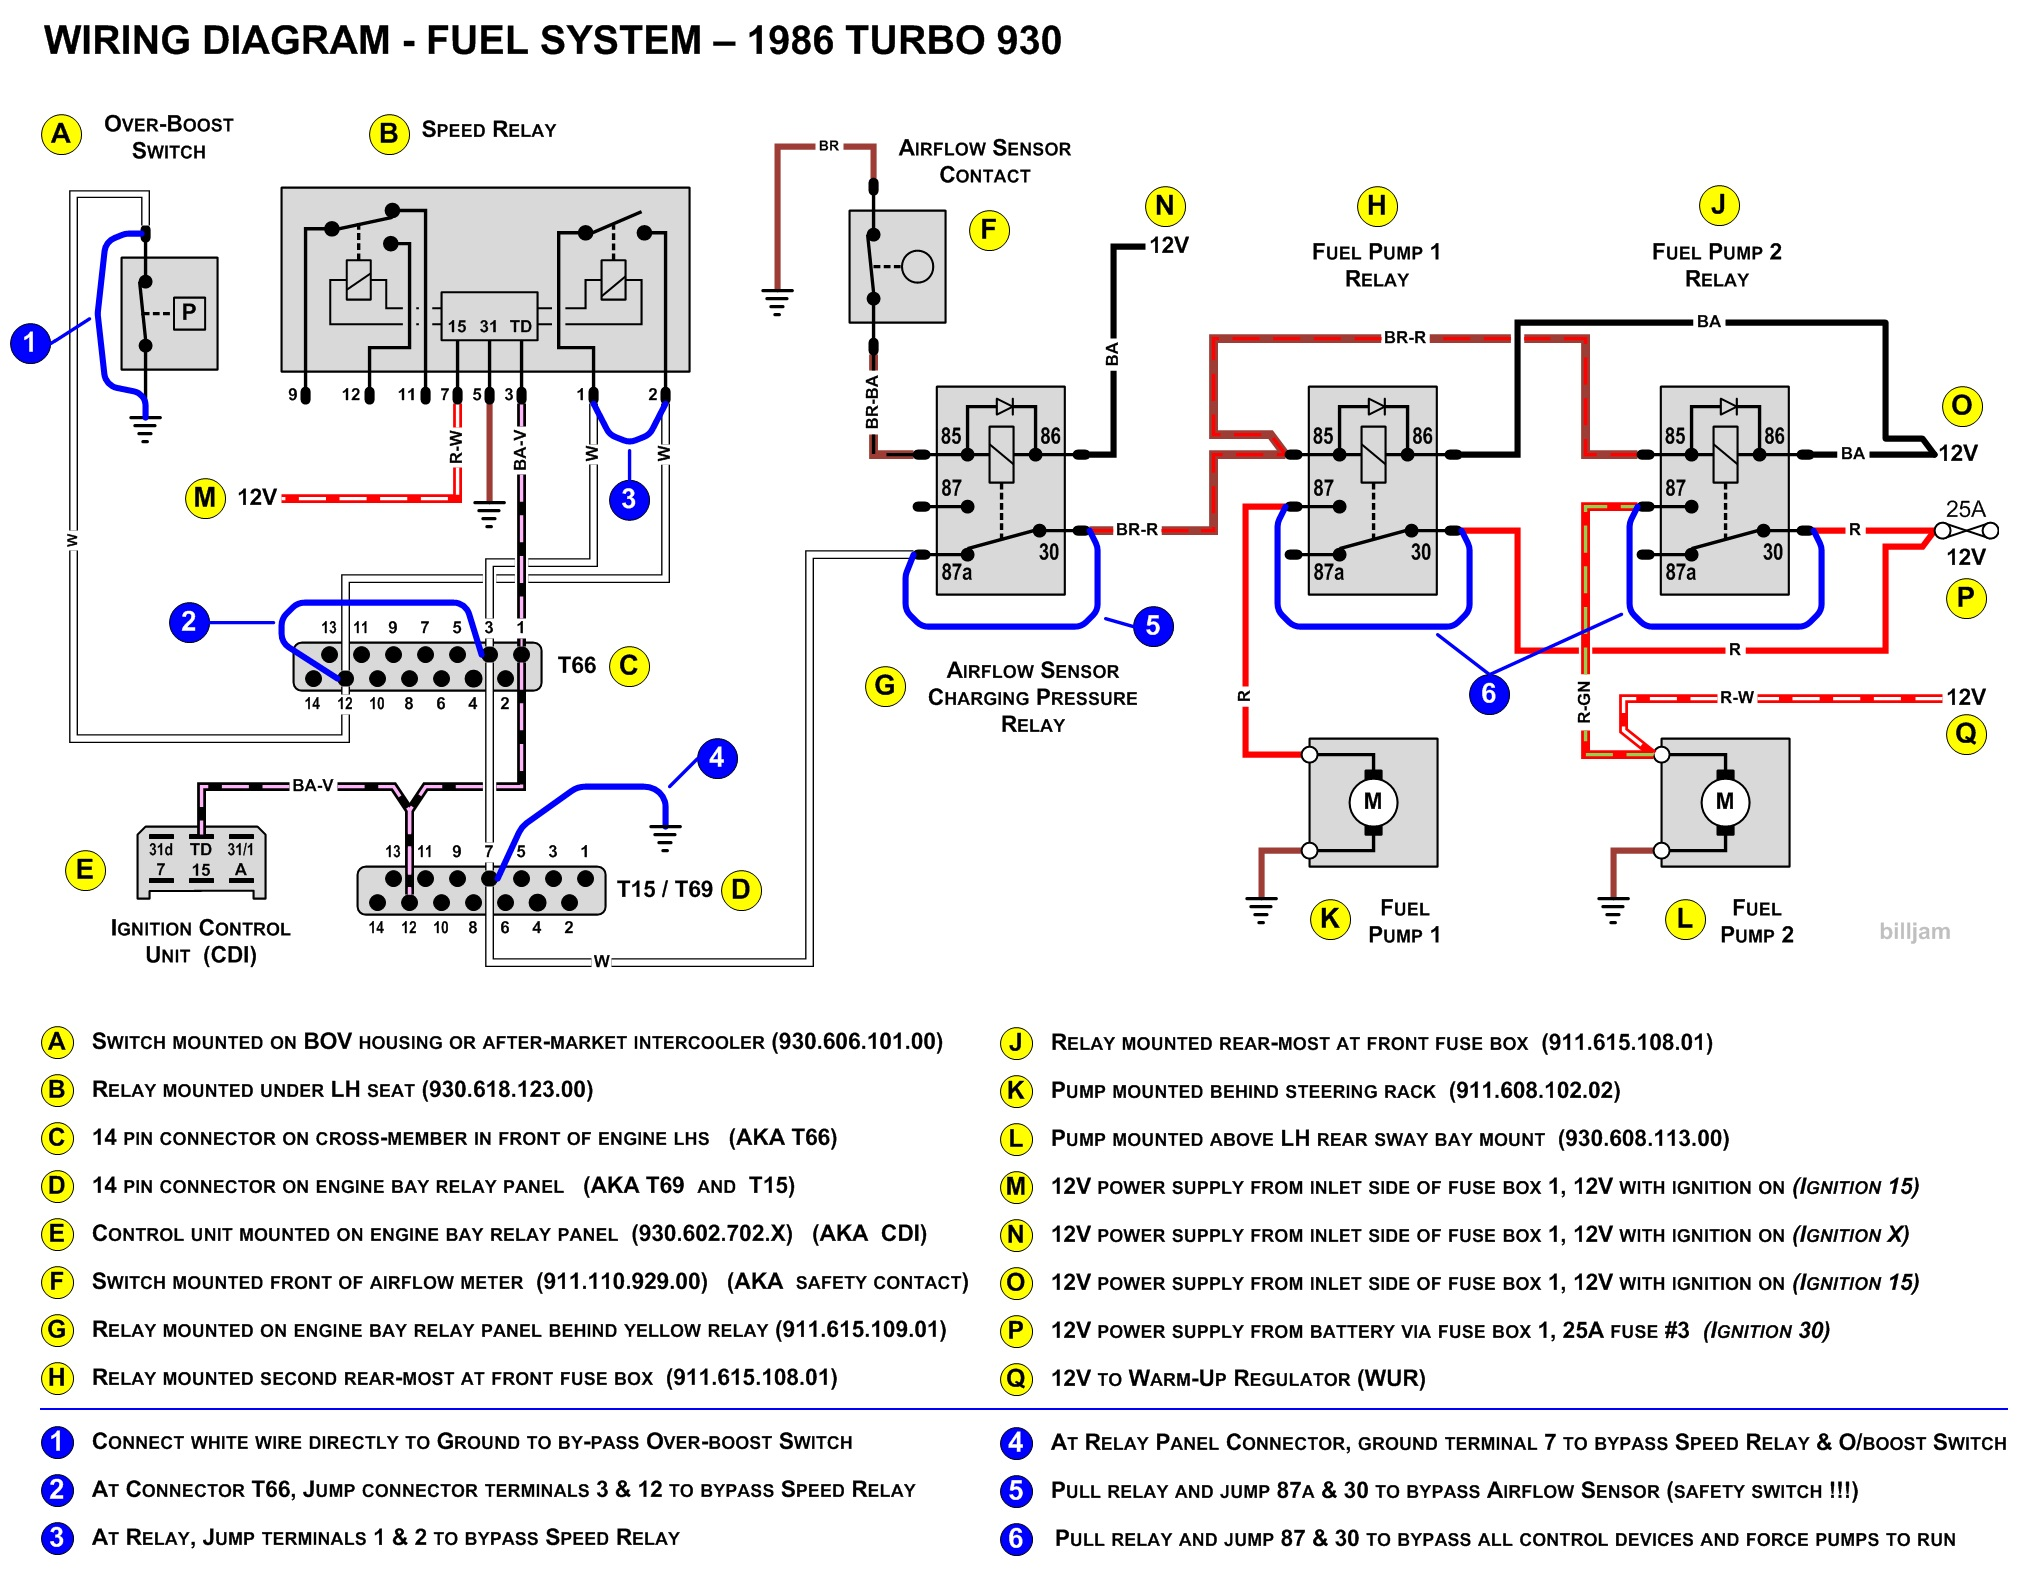 1637797 Nx Maximizer 4 Lingenfelter Launch Control Lnc 003 Wiring Diagram besides 30 Cutler Hammer Contactor Wiring Diagram additionally Generac Starter Generator Wiring Diagram Free Download additionally 7nwes 2500 2007 Ram 6 7 Cummins No Start Crank together with Wiring A Convertible Top Motor. on starter solenoid wiring diagram